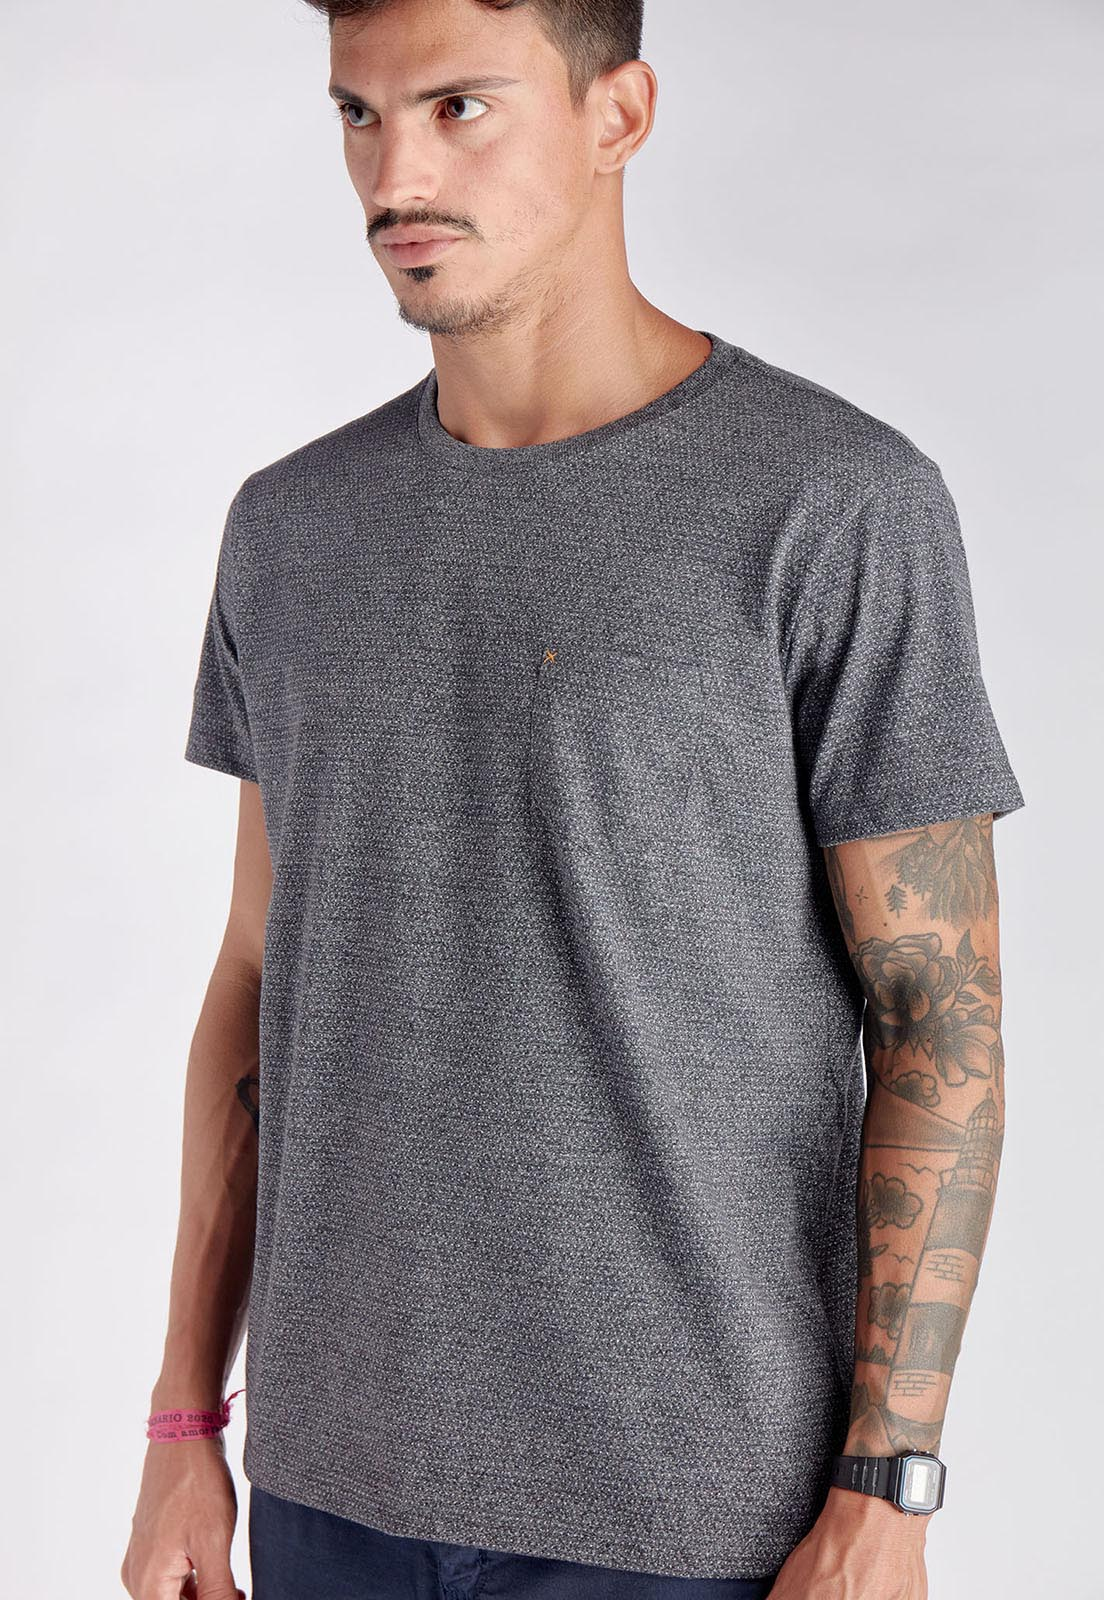 T-shirt Cloudy Melty